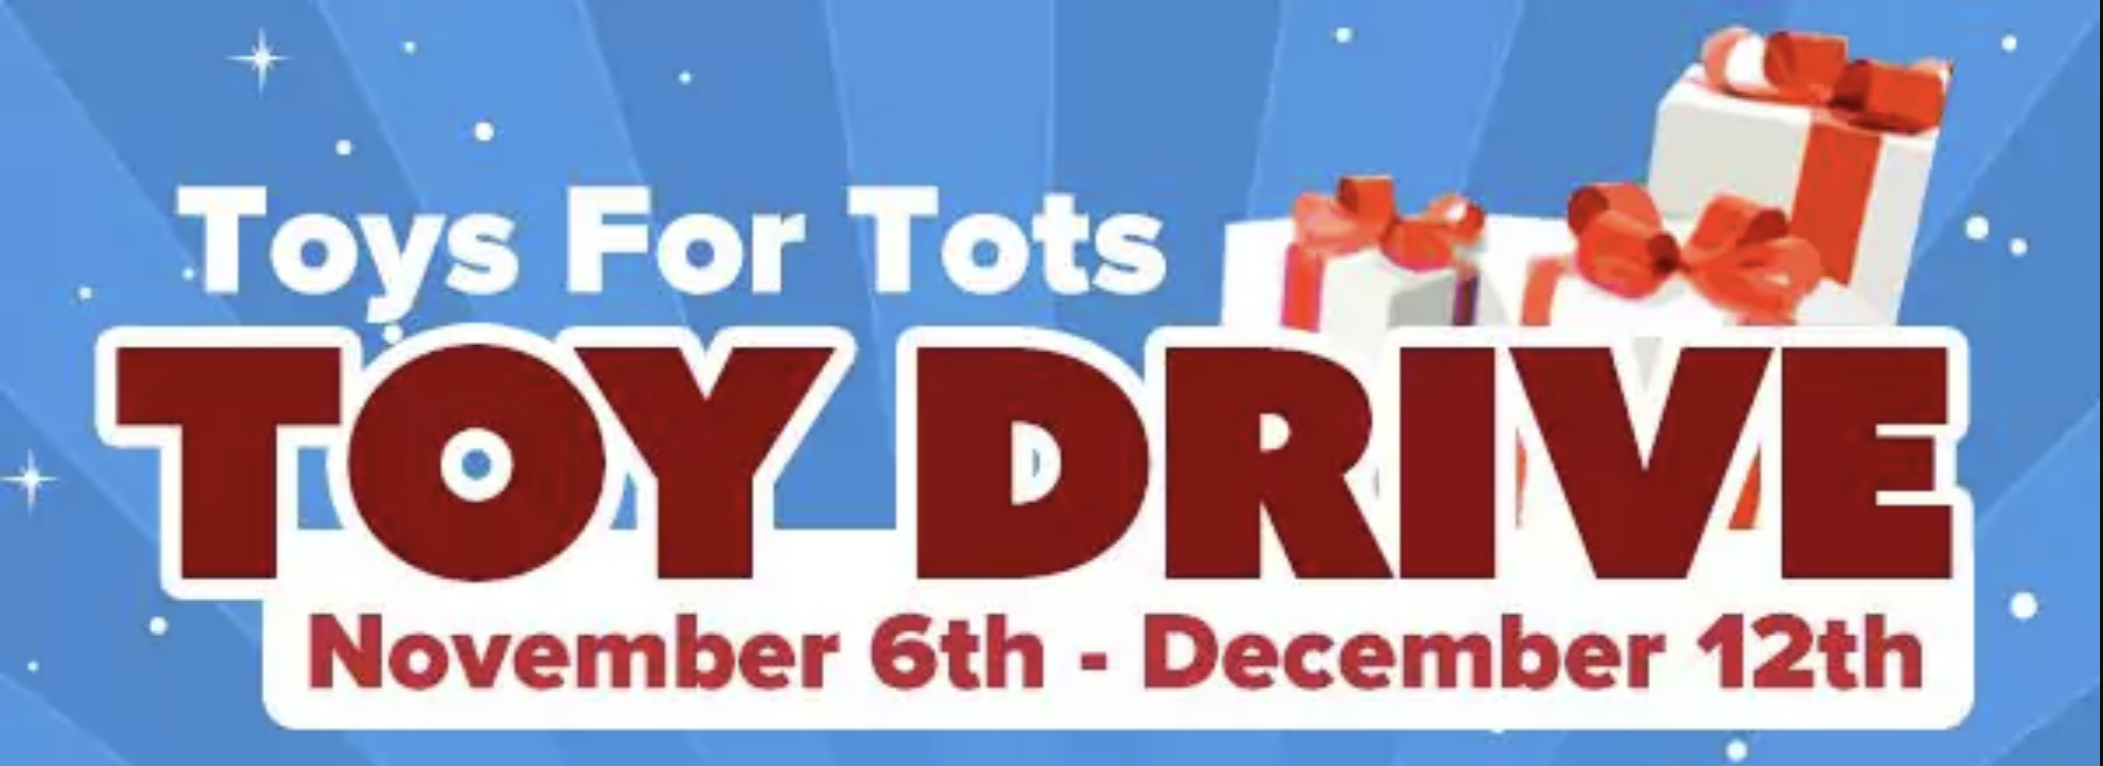 Toys For Tots Request Form : Toys for tots ocean honda of weymouth